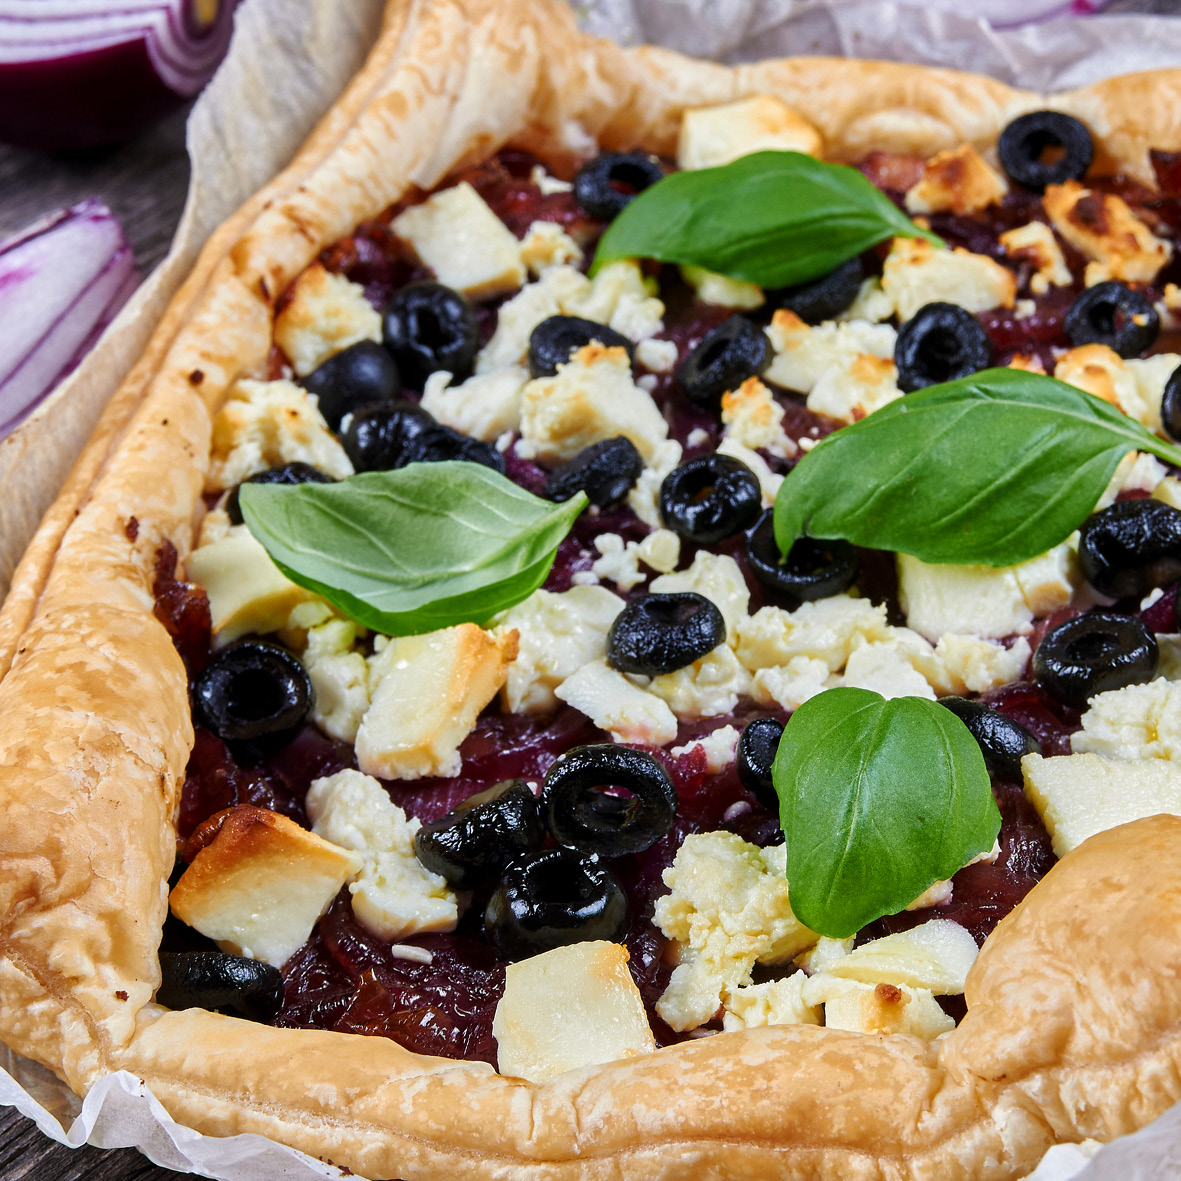 baked_ricotta_caramelised_red_onion_prosciutto_and_blueberry_tart.jpg